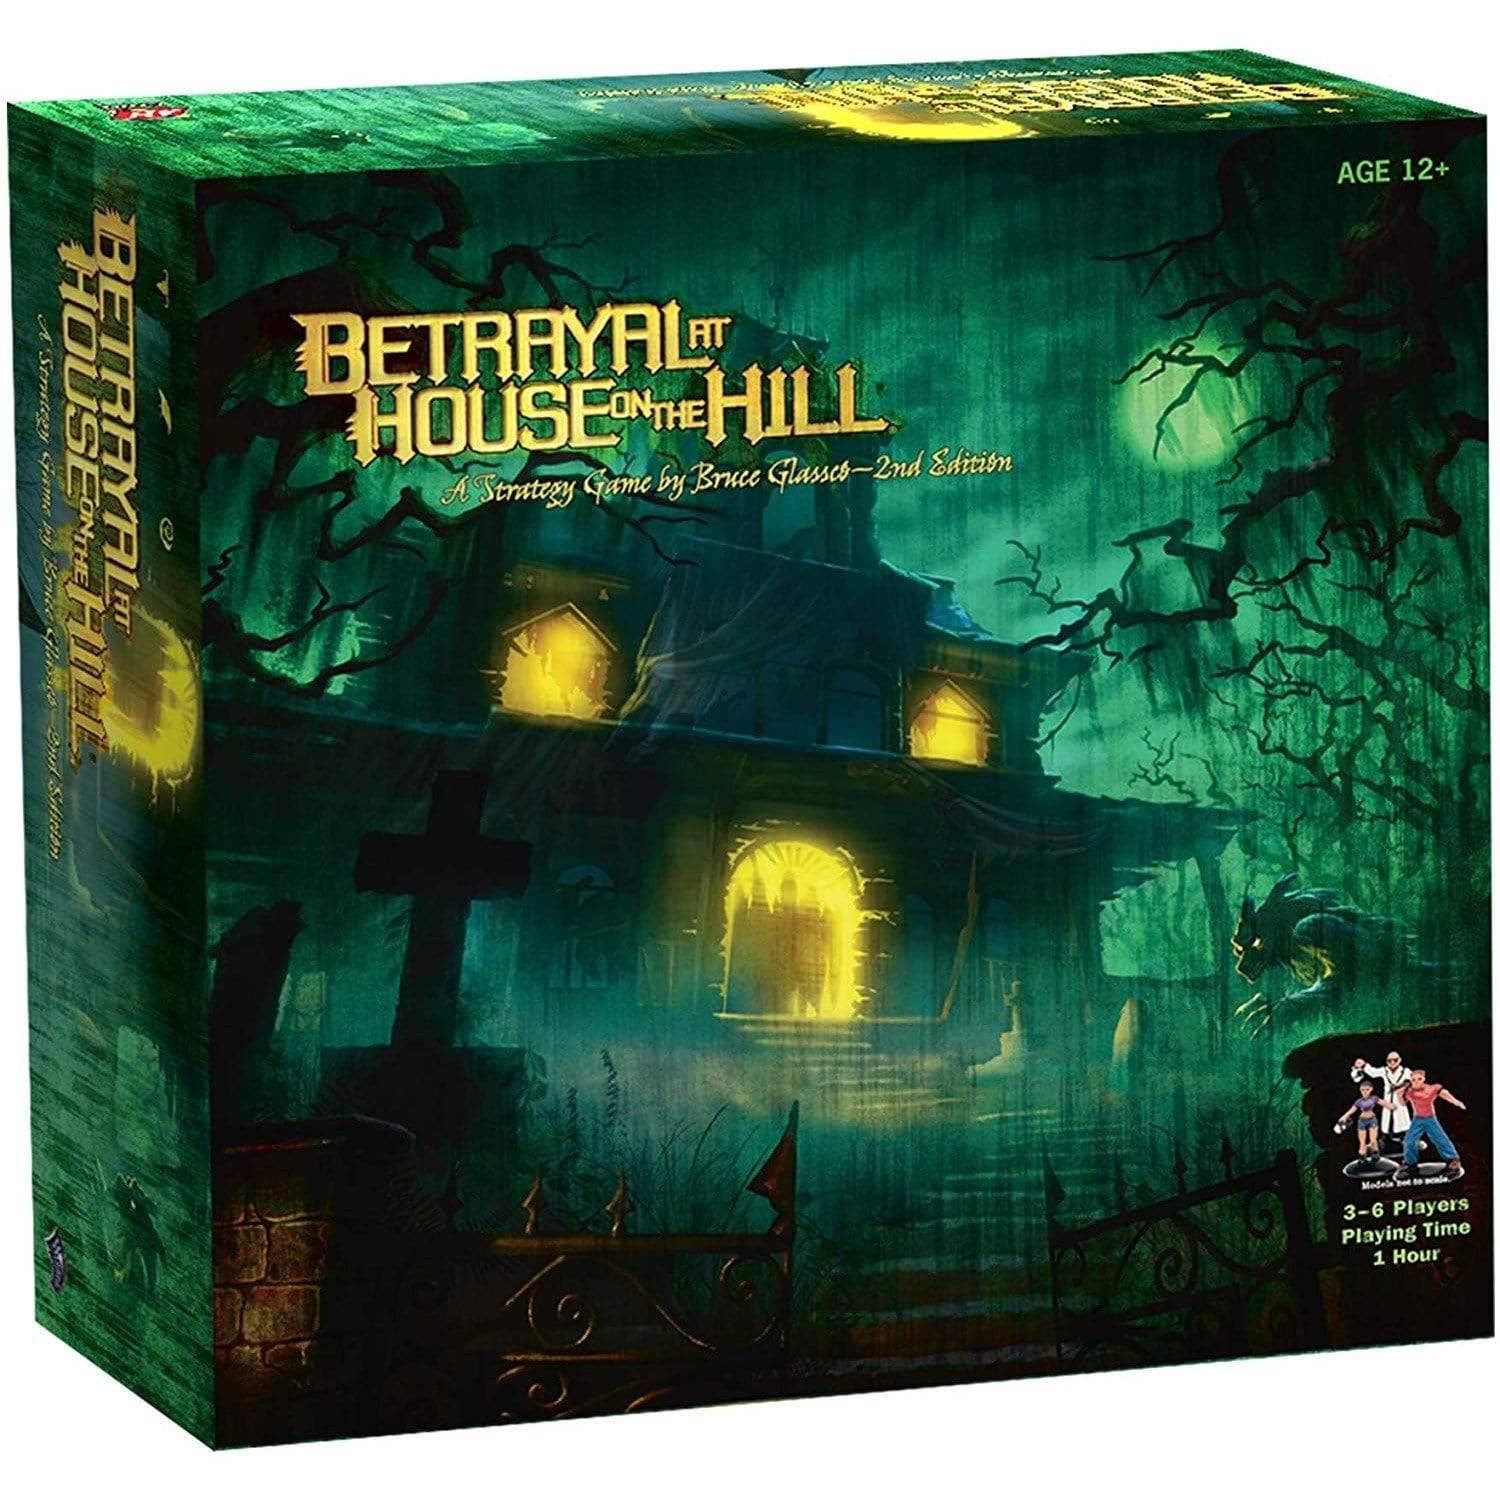 Betrayal At House On The Hill Alliance Games Board Games